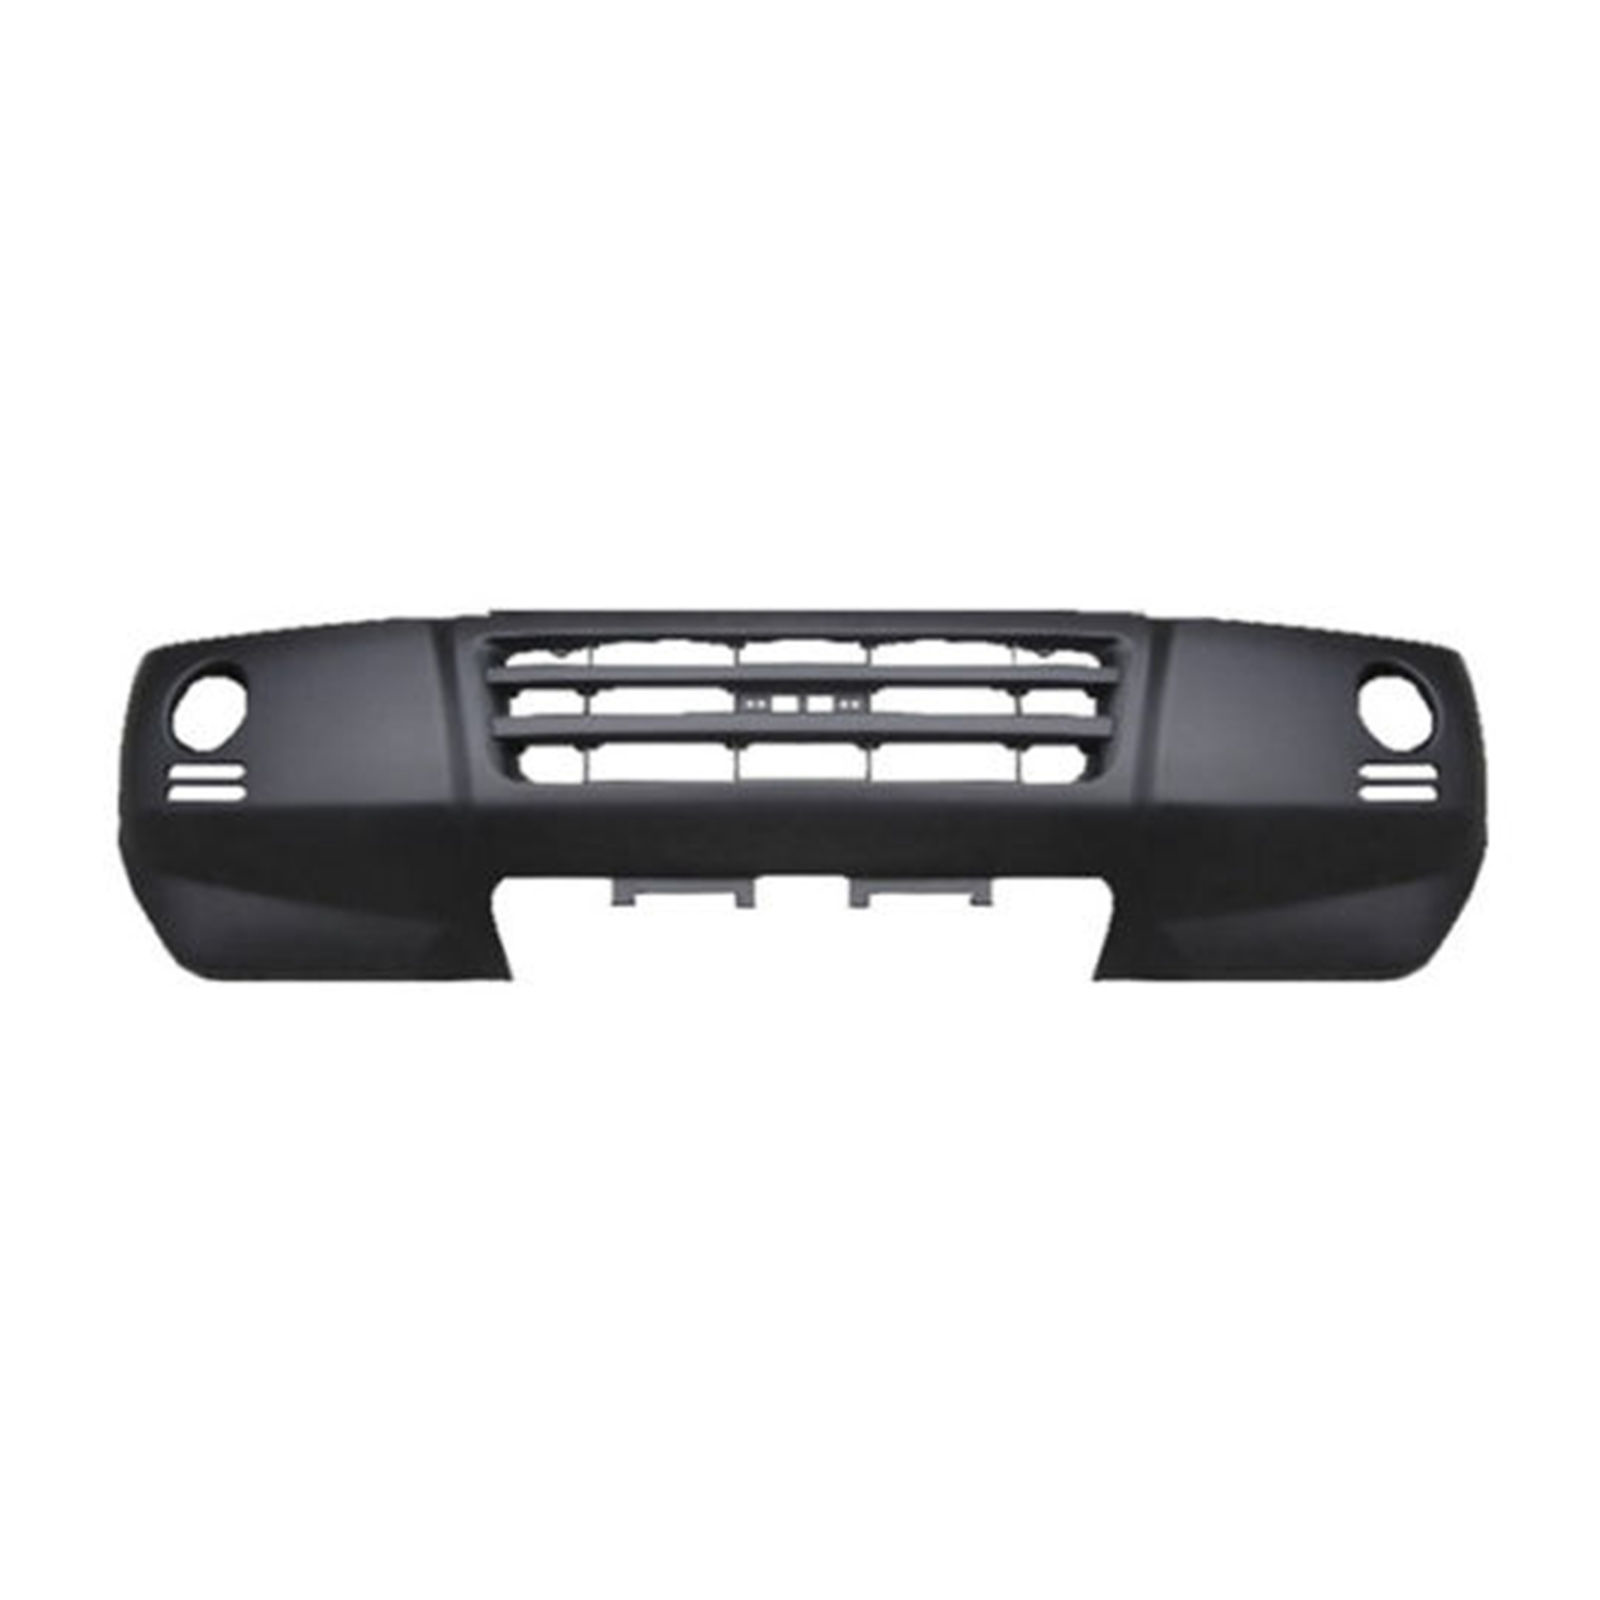 2003-2006 MITSUBISHI MONTERO Front Bumper Cover Painted to Match